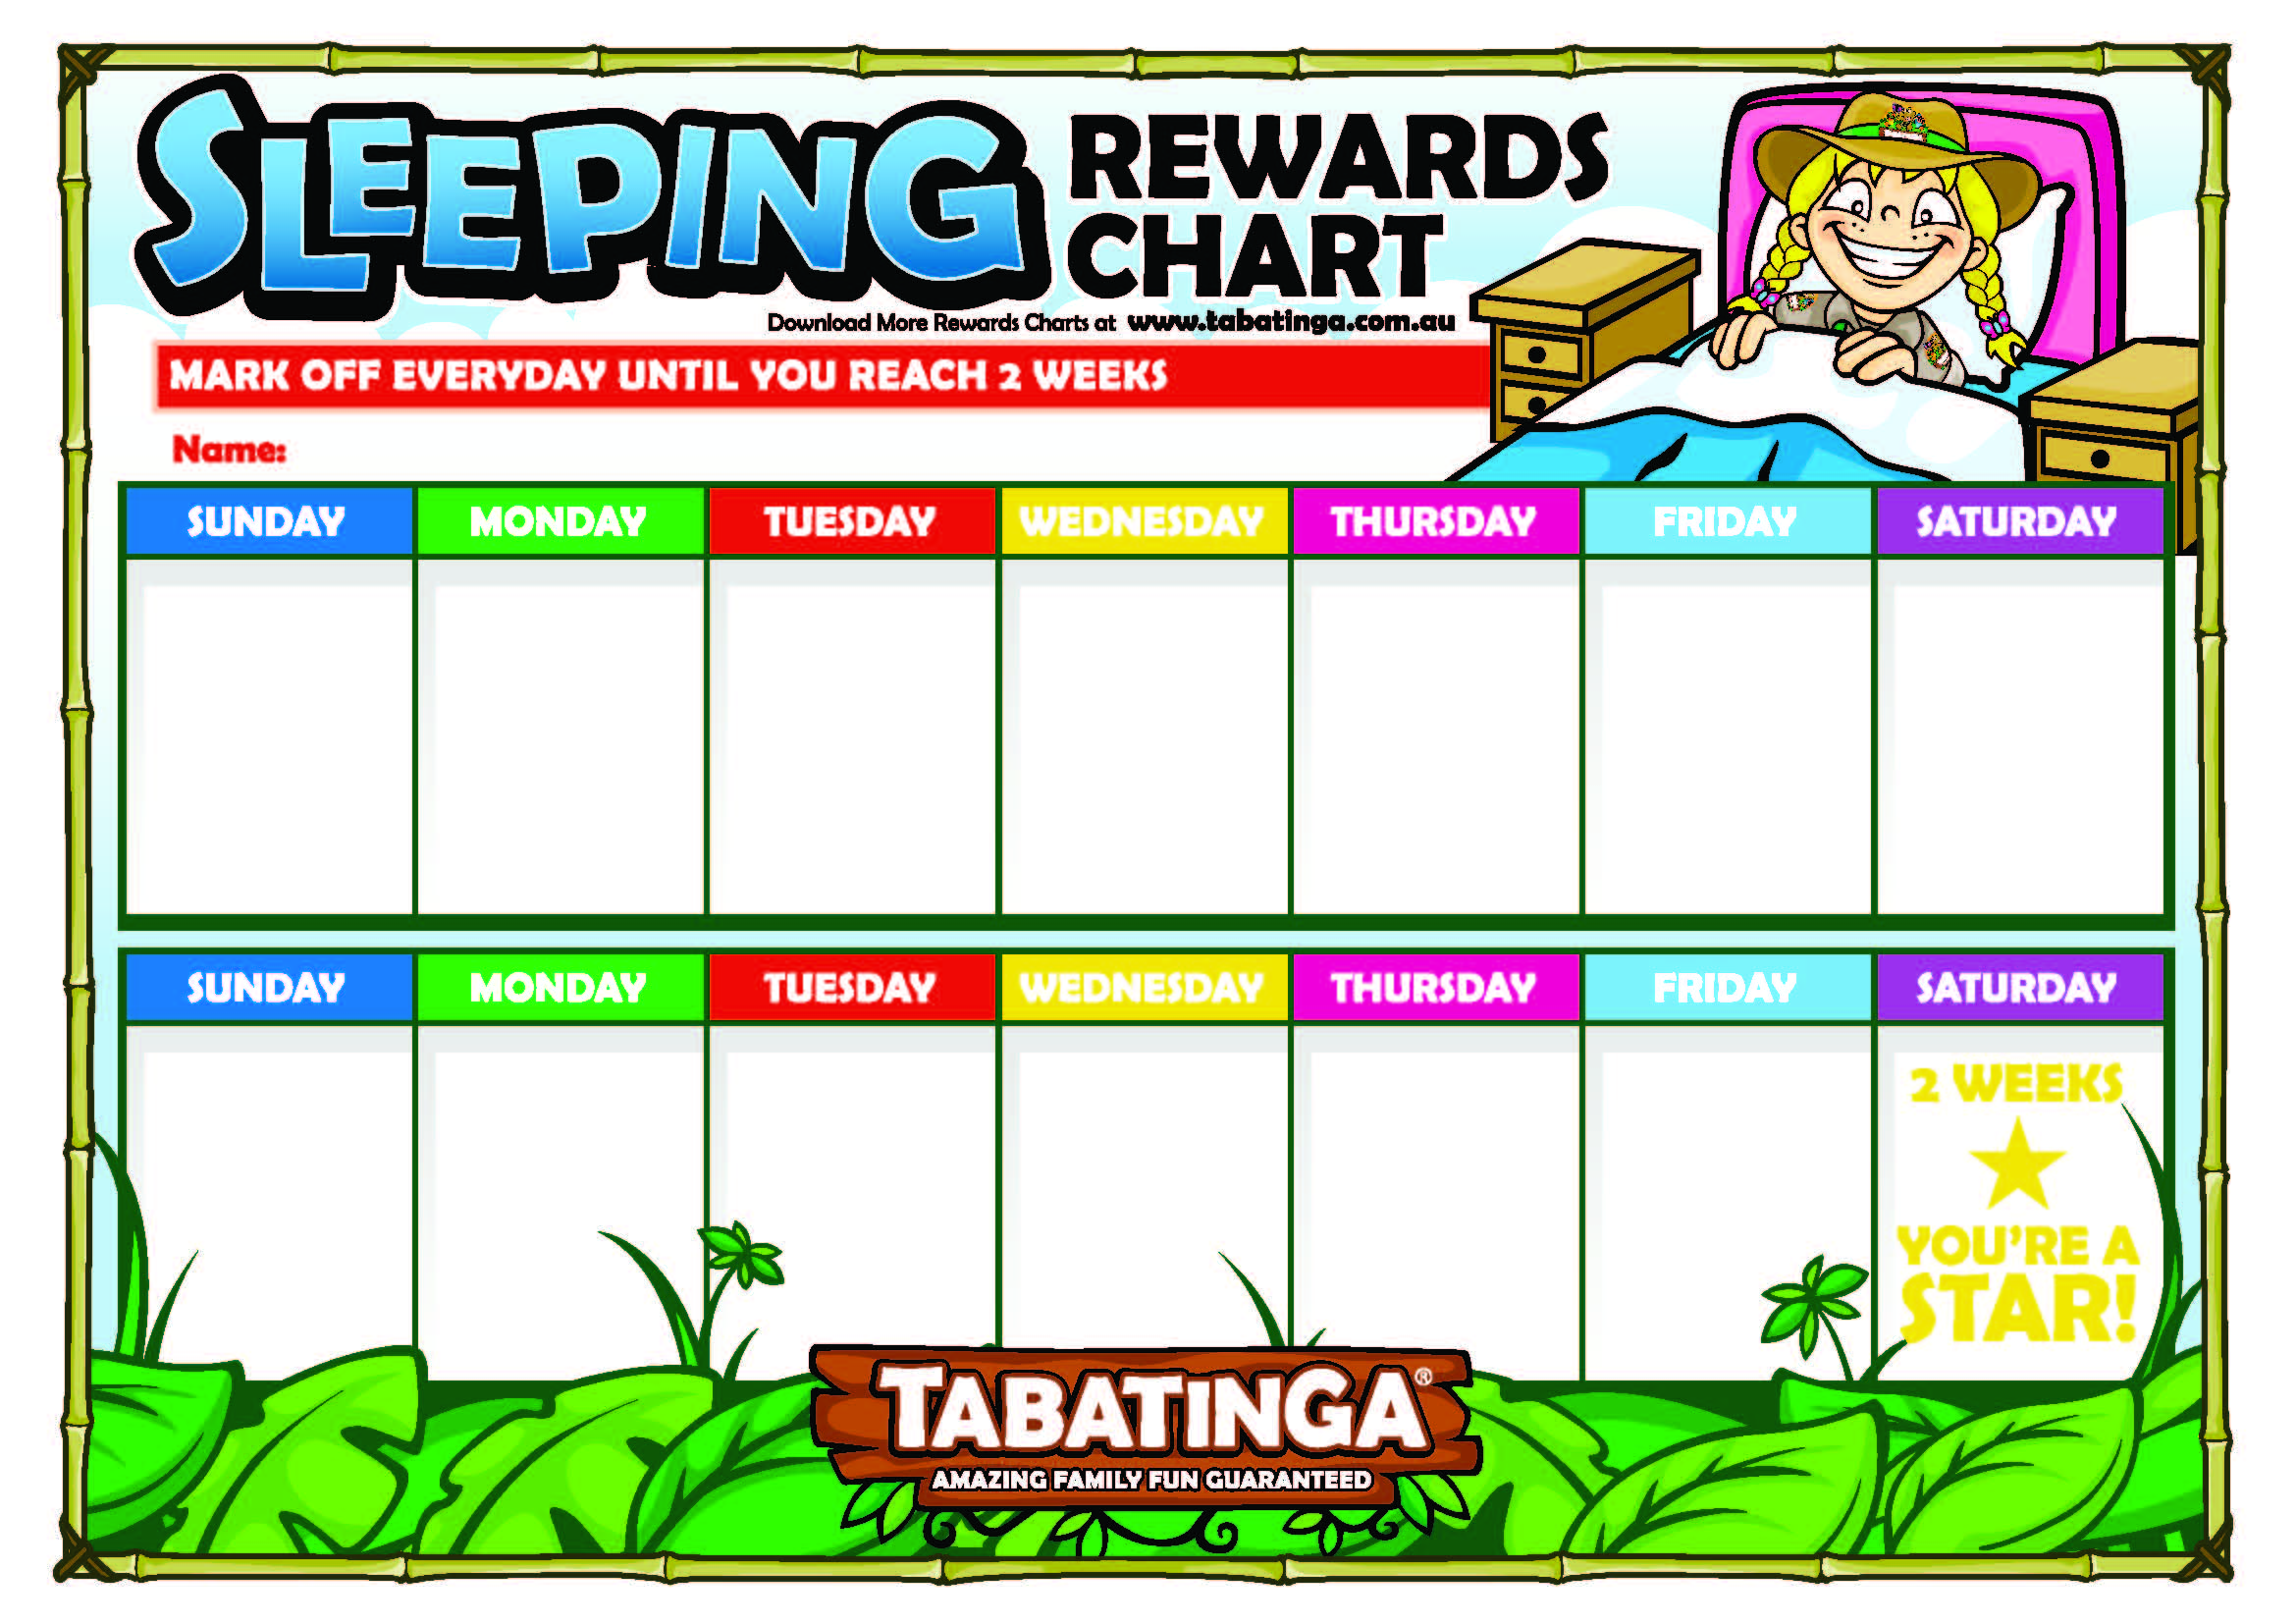 after two weeks of completing the task your child is well on the way to forming a positive habit and you can reward them with a special treat hint maybe a